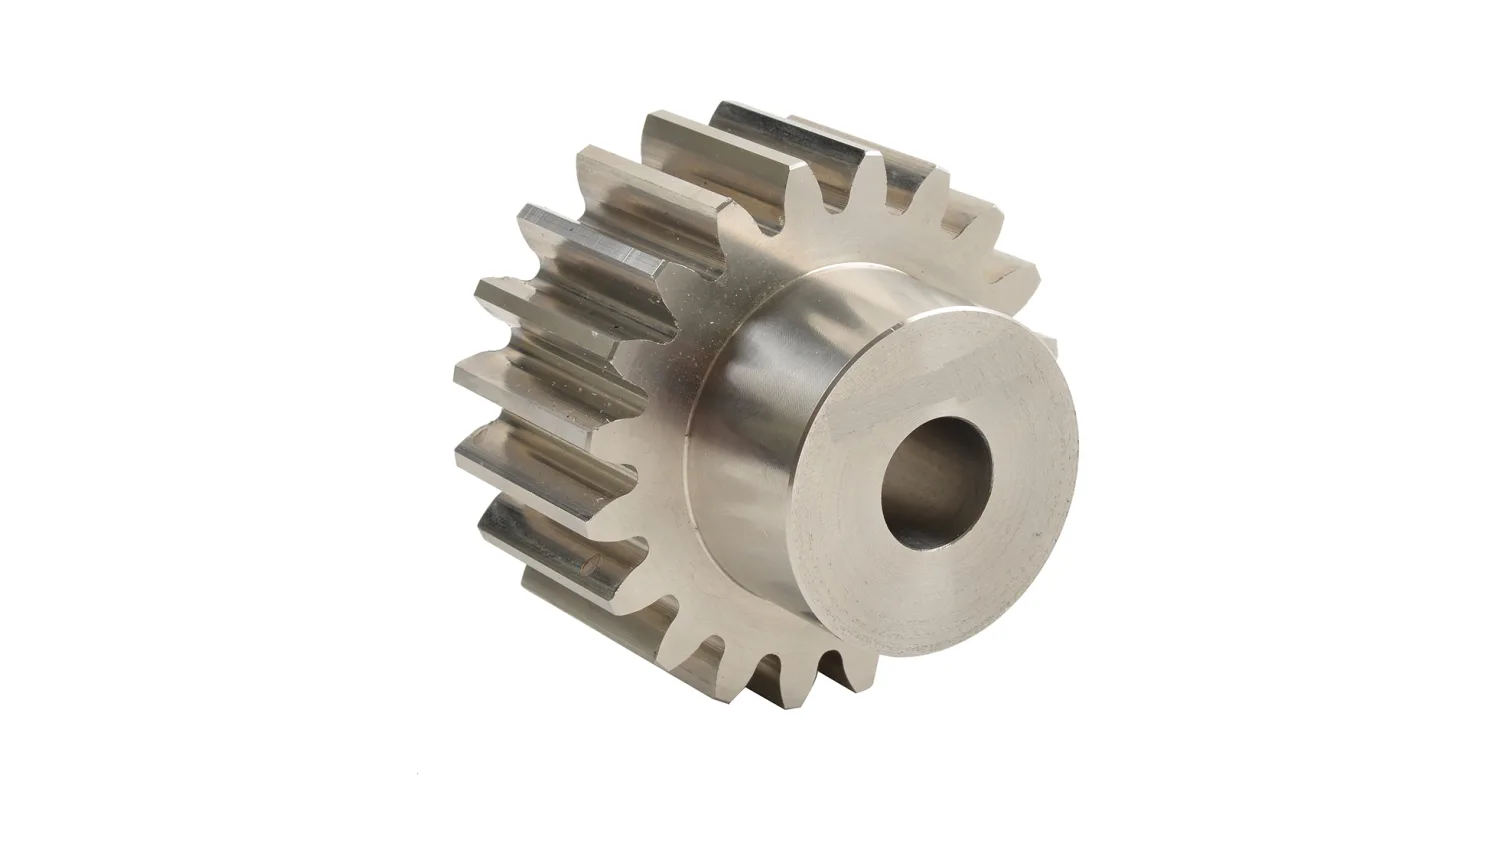 4-Mod-x-33-Tooth-Metric-Spur-Gear-in-Steel